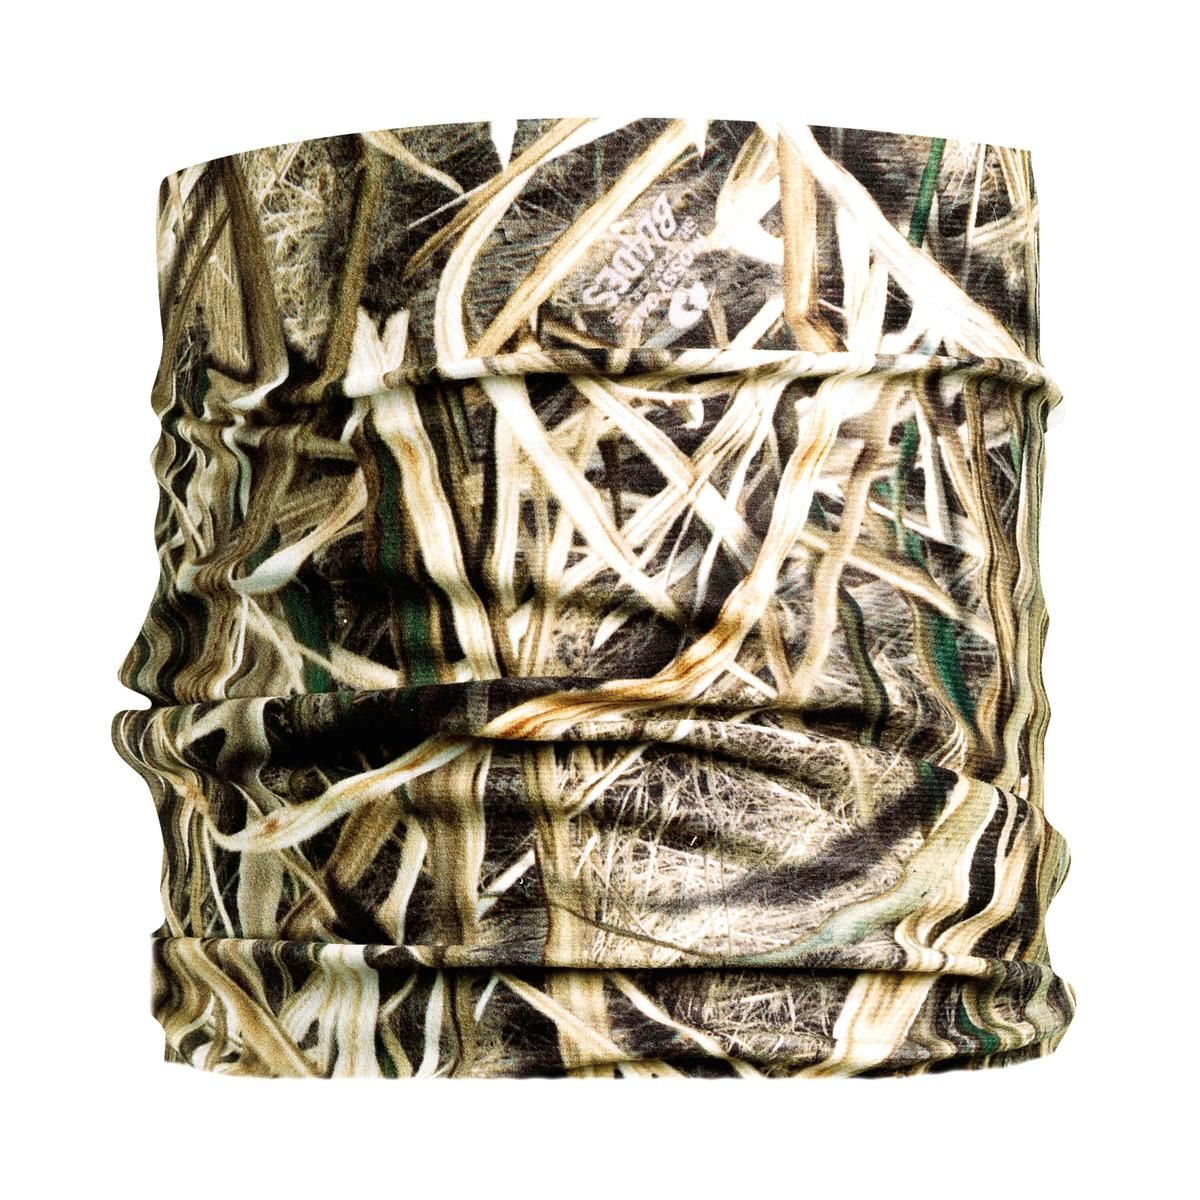 Turtle Fur Ultralight Breathable Totally Tubular Upper Half Face Covering Neck Gaiter Mossy Oak Shadow Grass Blades